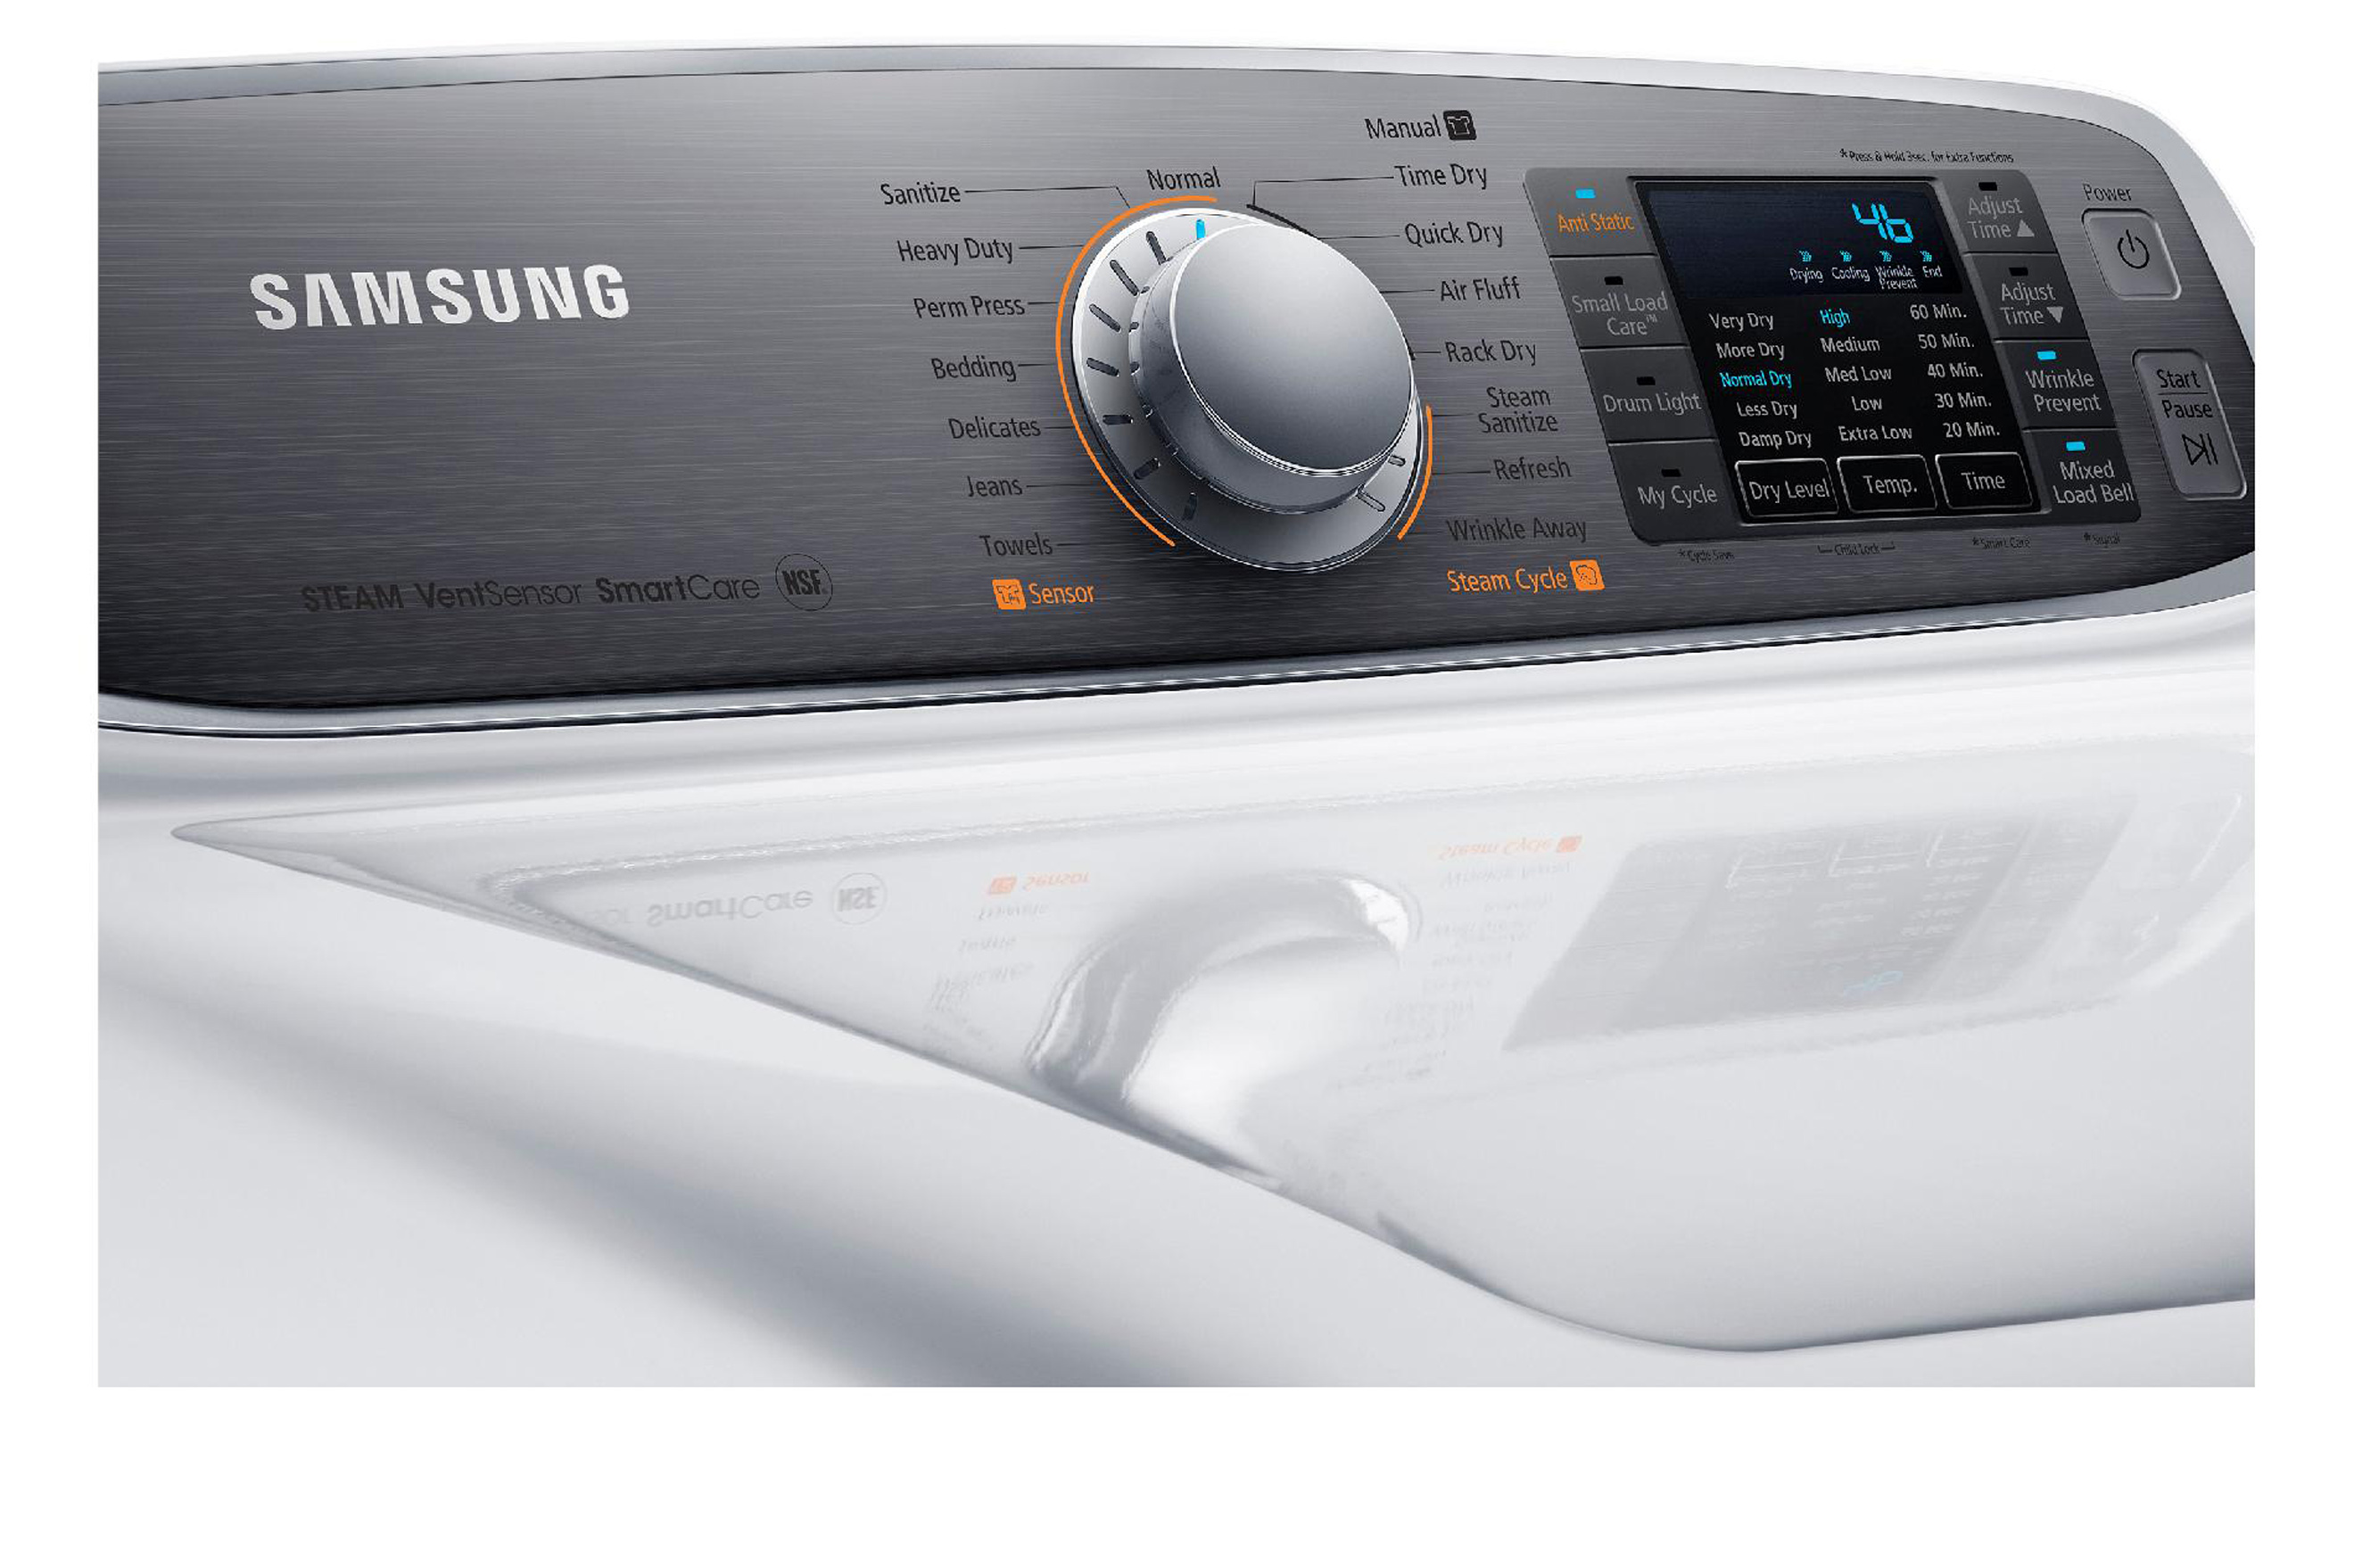 Samsung 7.4 cu. ft. Electric Dryer - Neat White.